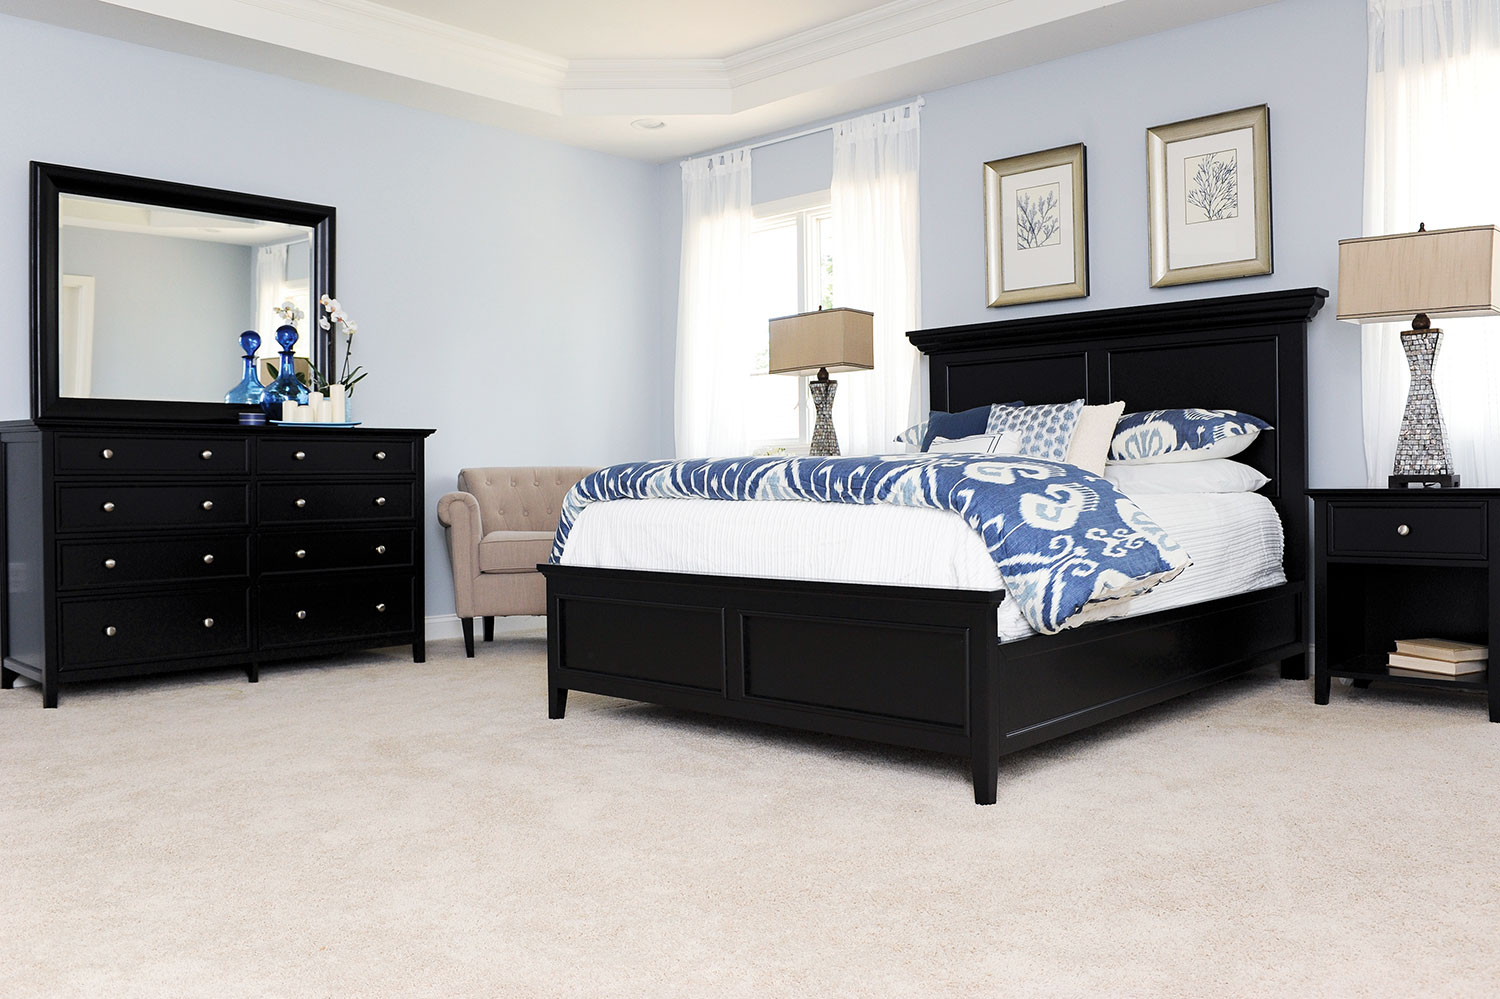 Bedroom Furniture - Ellsworth 4-Piece King Bedroom Set - Black